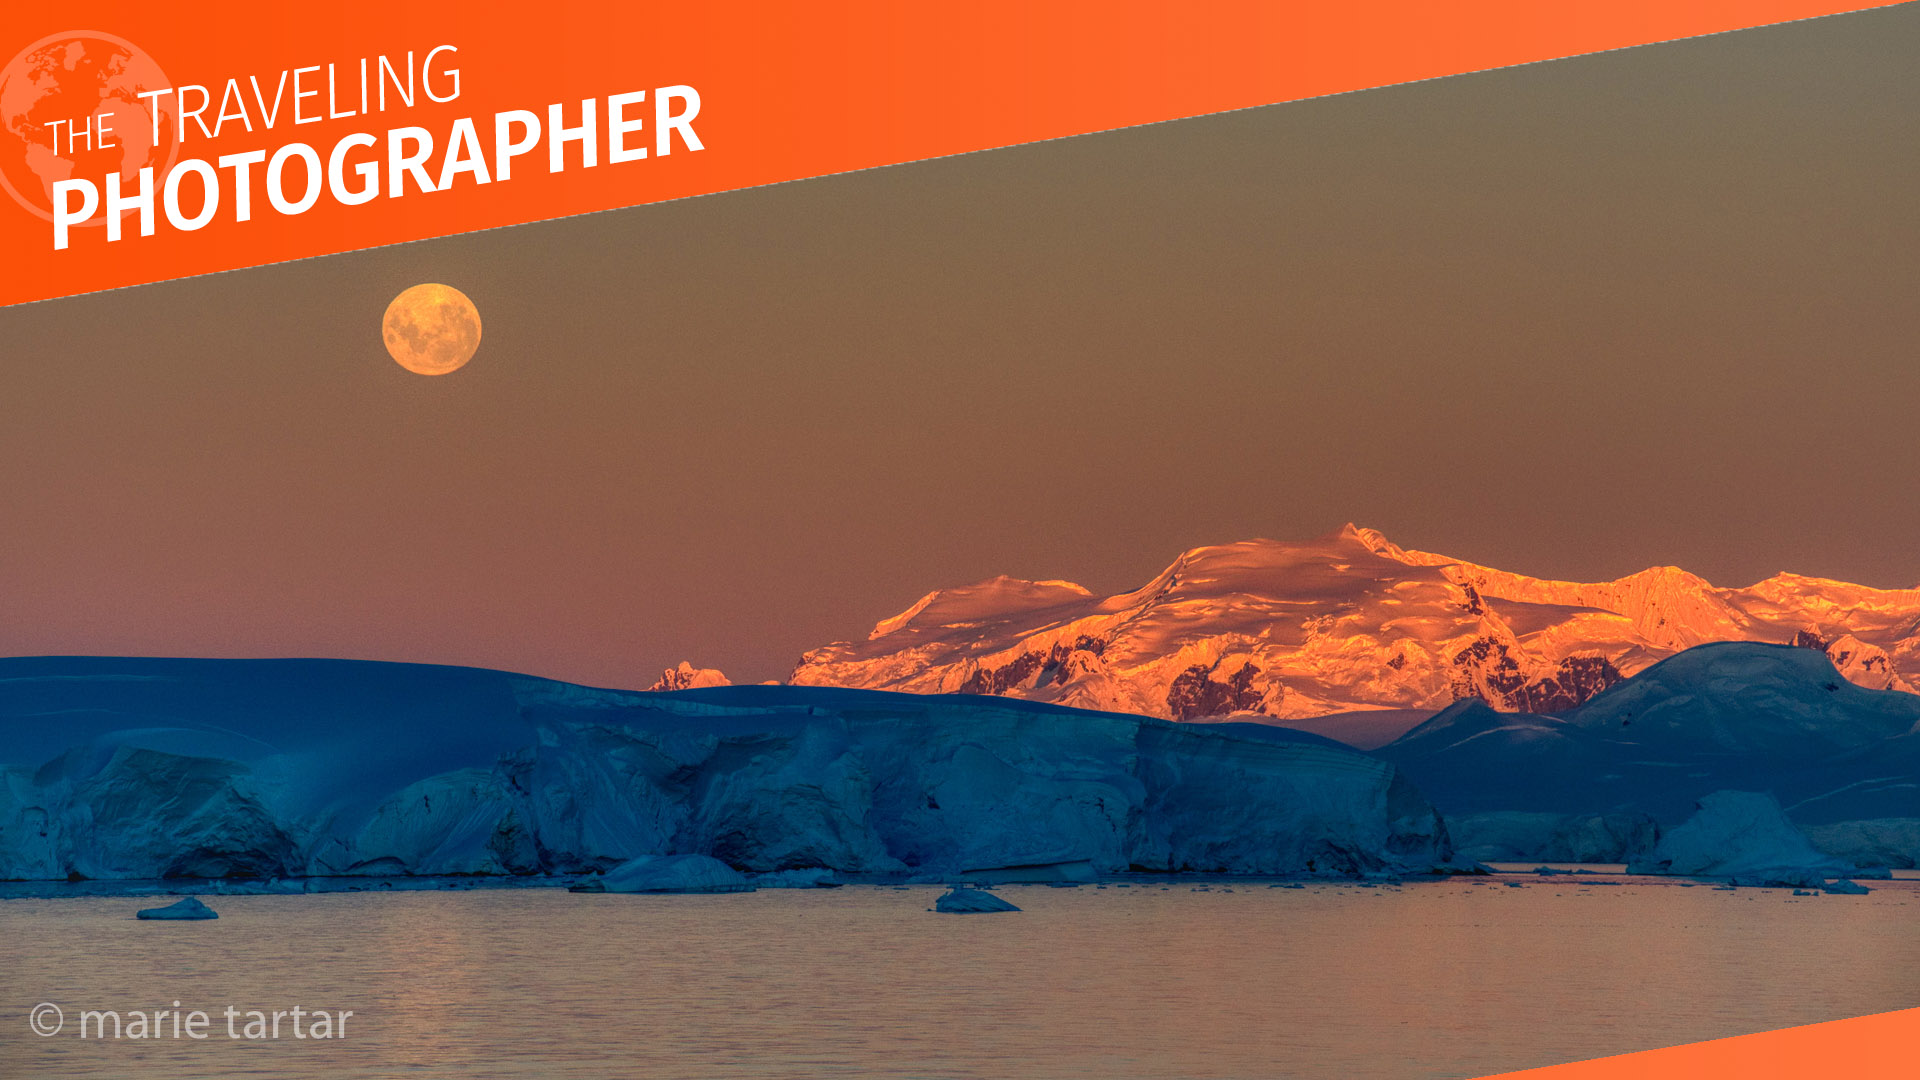 A land of icy landscapes and otherworldly light: Antarctica.